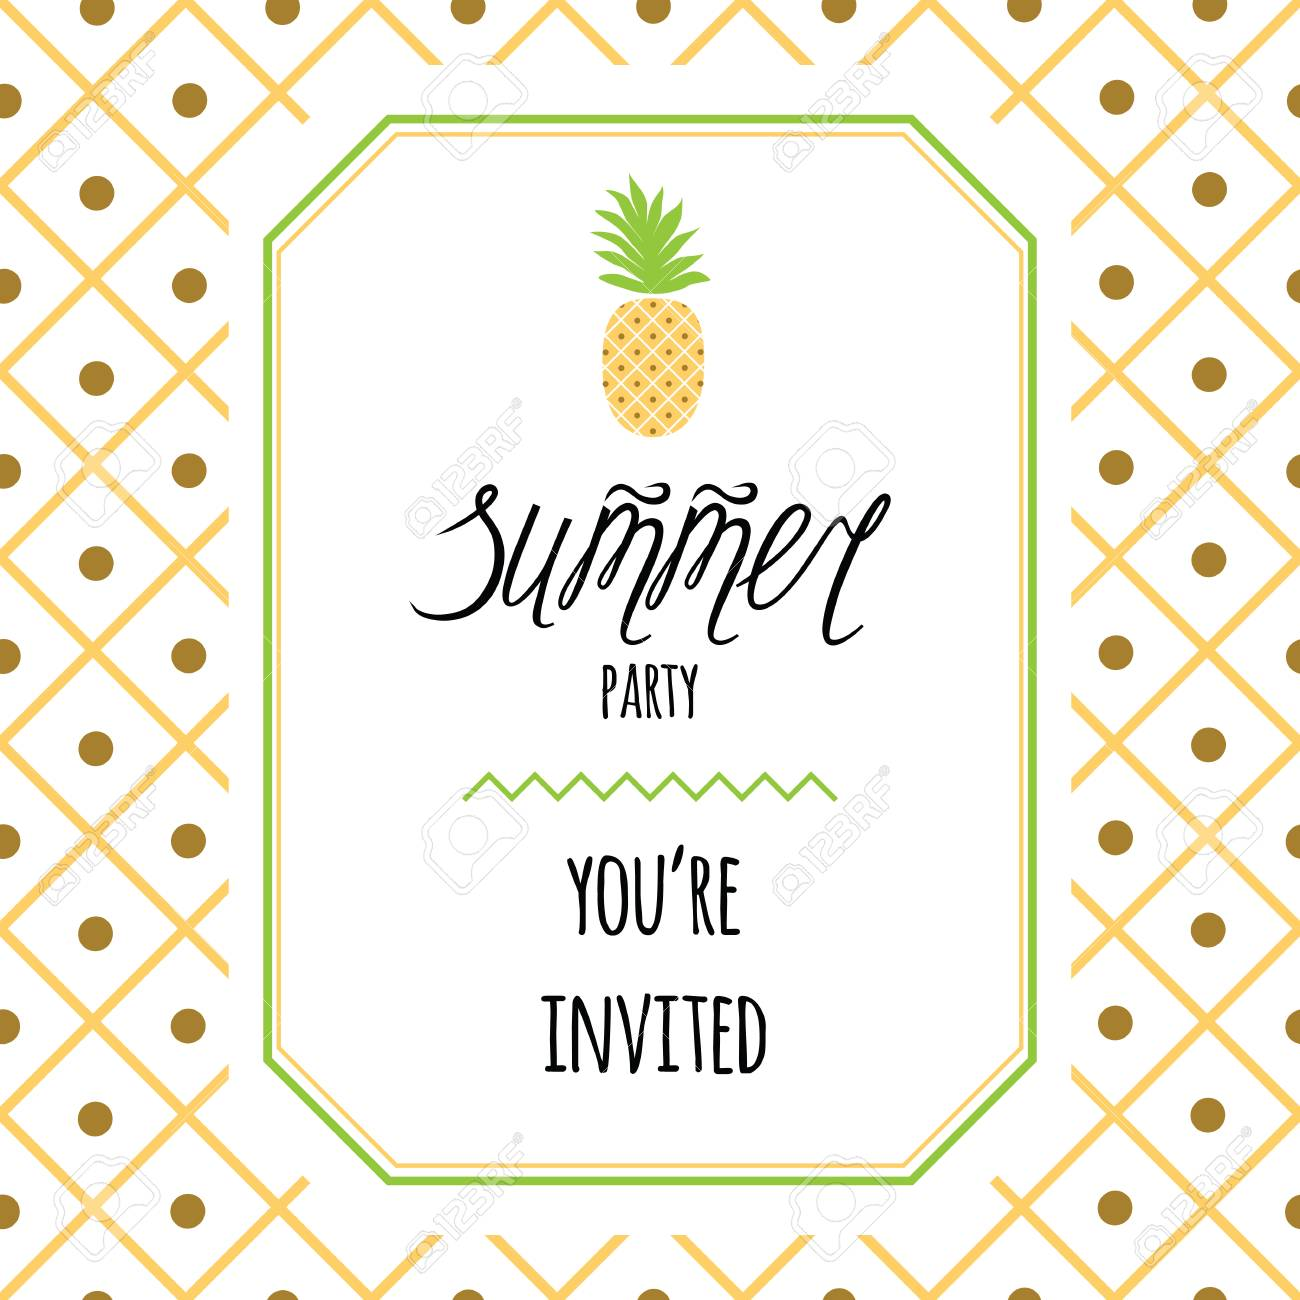 Pineapple Template | Vector Invitation Template With Pineapple Text Summer Party